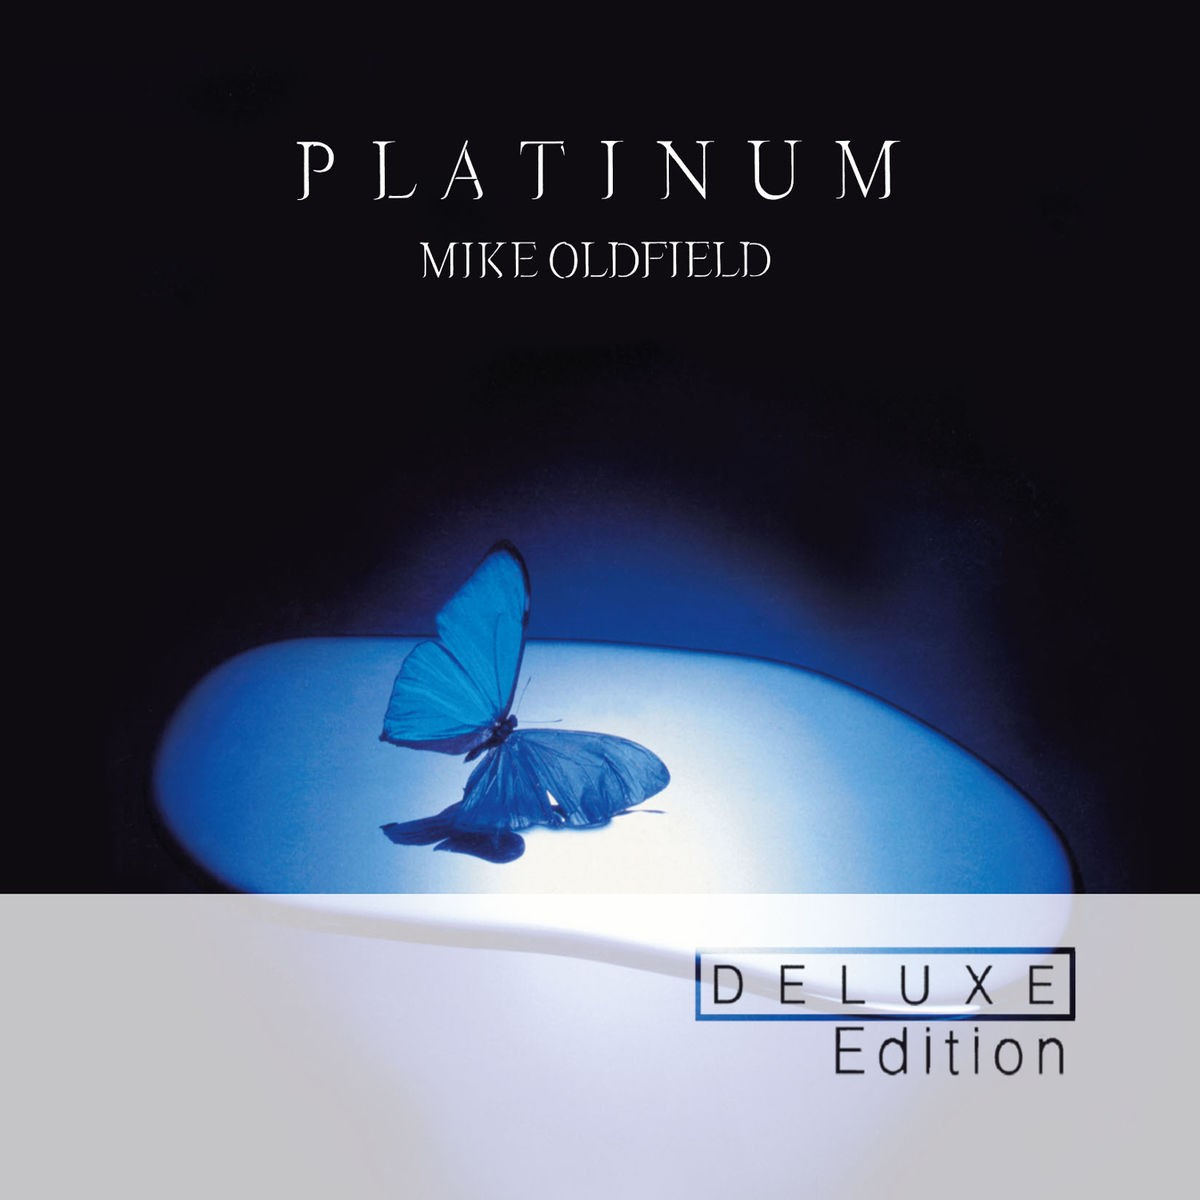 Mike Oldfield - Platinum (Deluxe Edition) CD - 06007 5339422